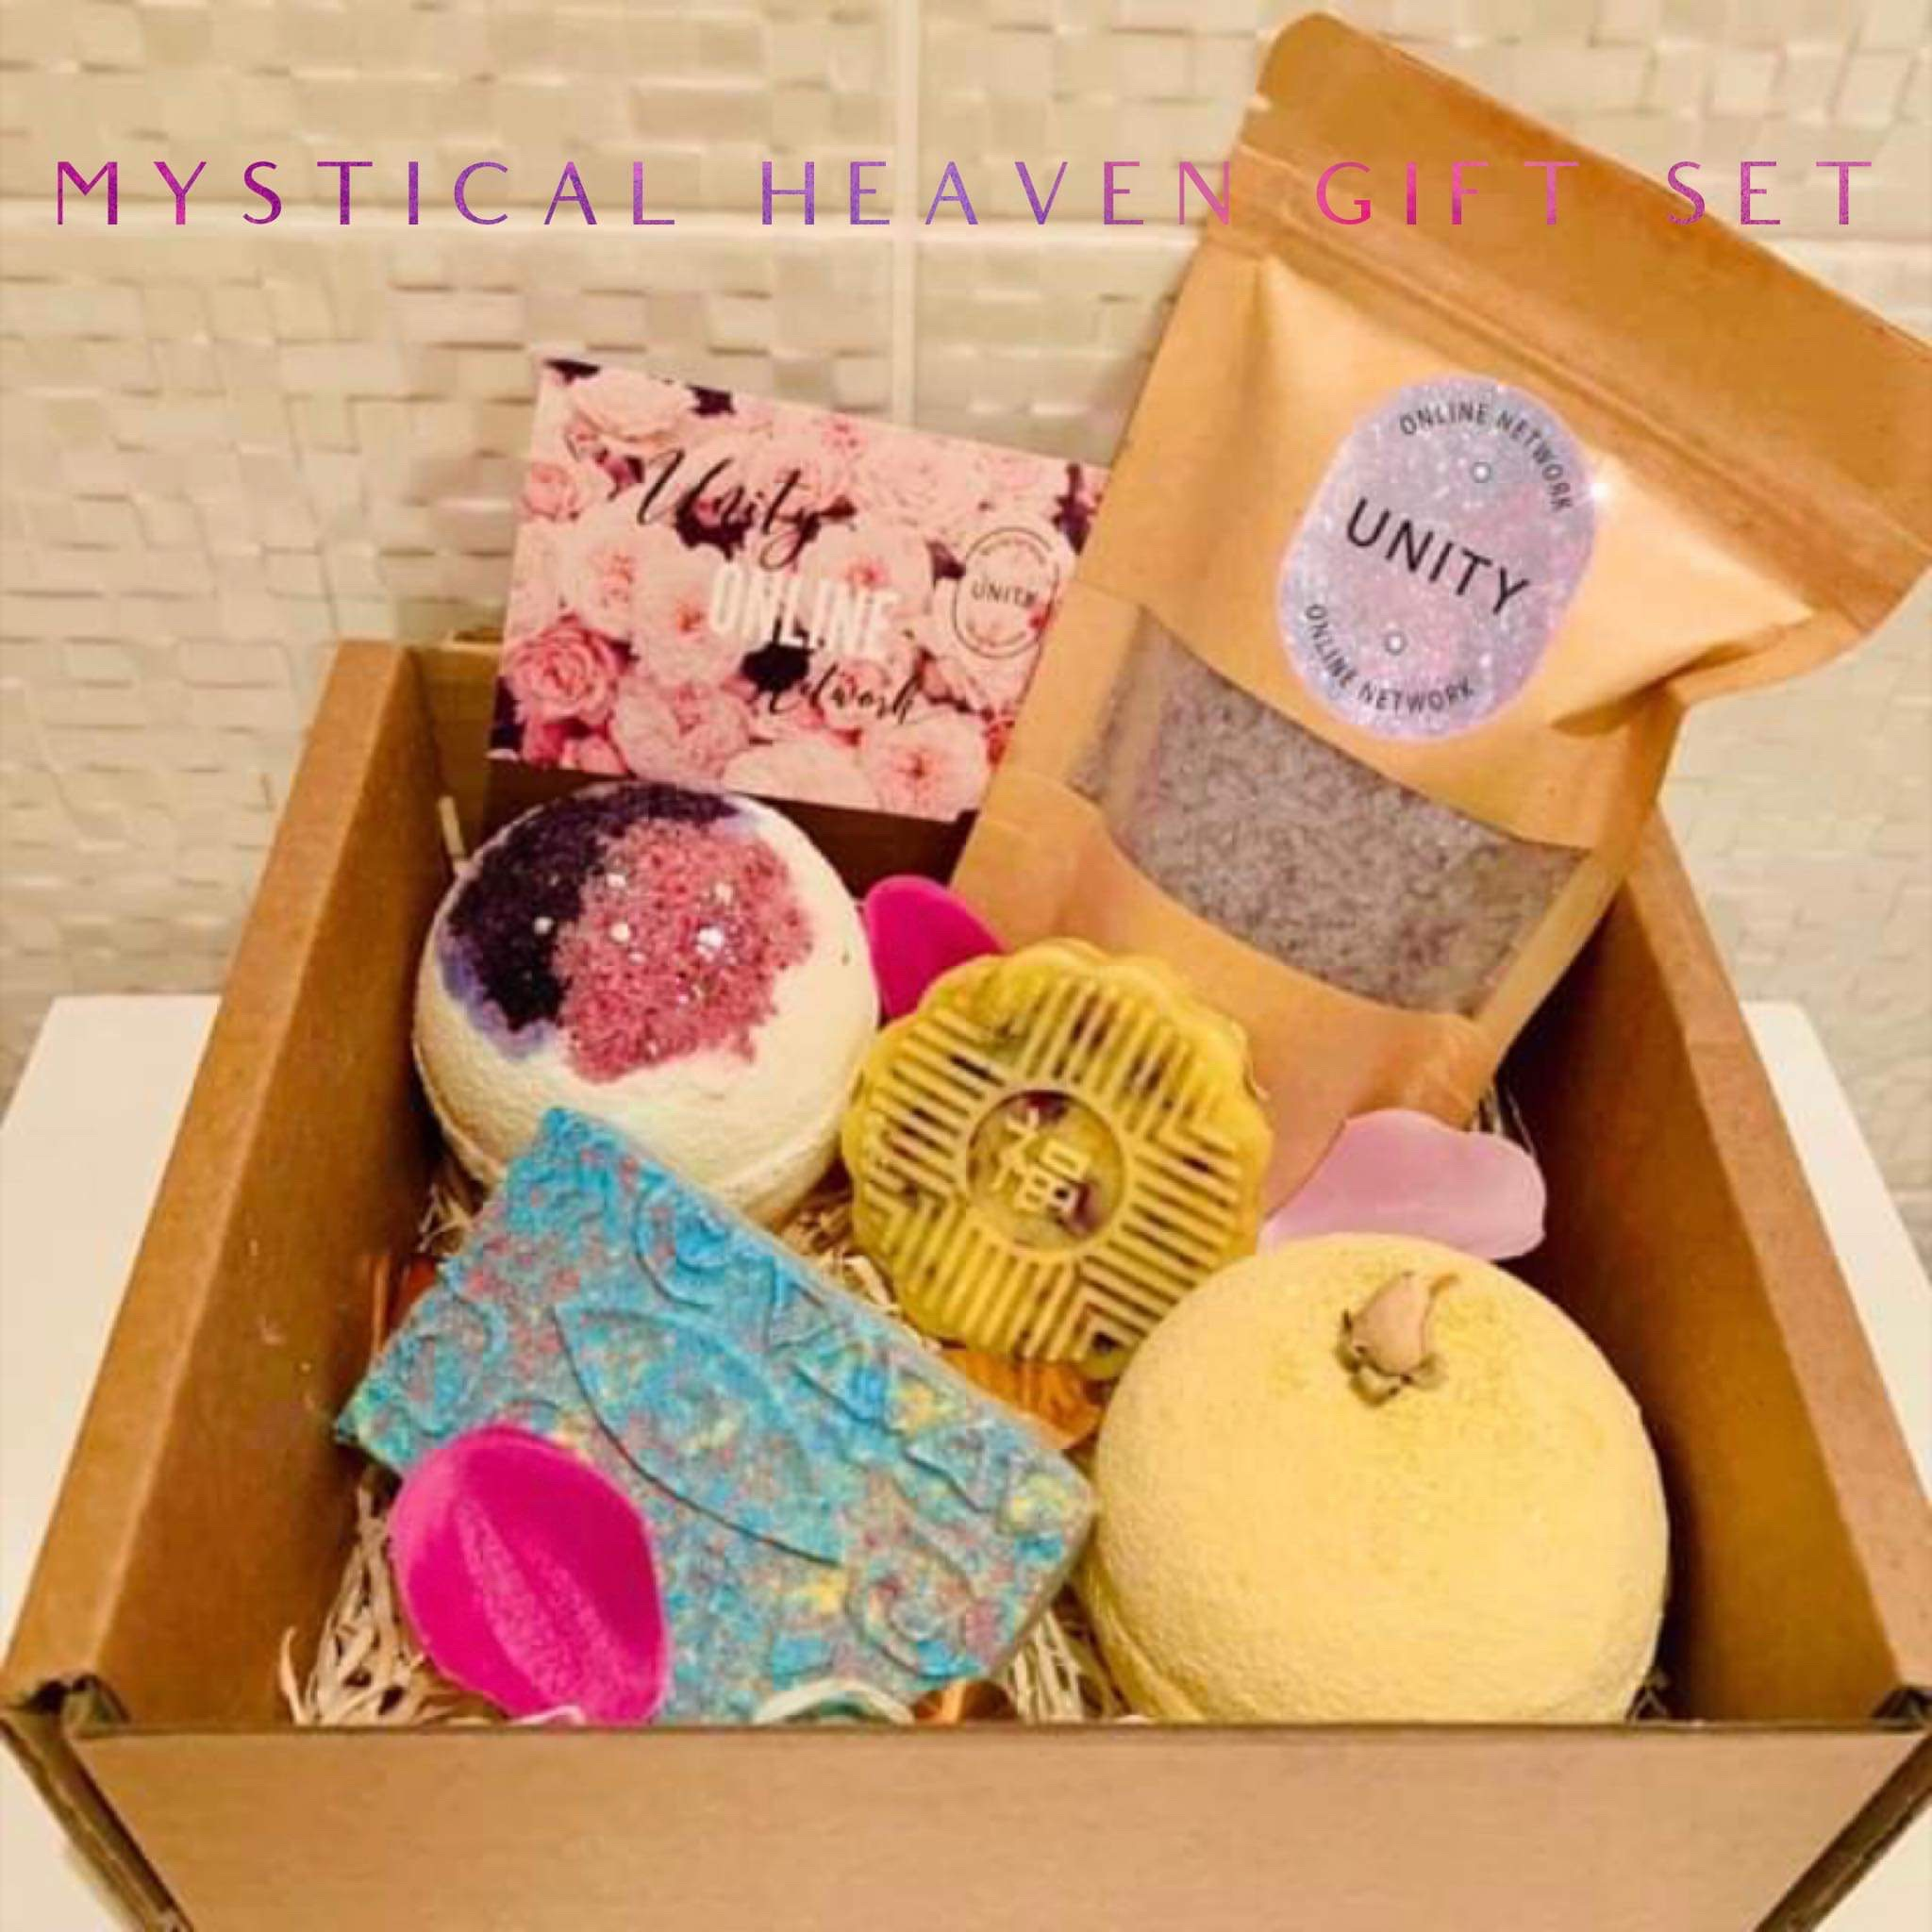 Mystical Heaven CBD Gift Set (7-10 working days)